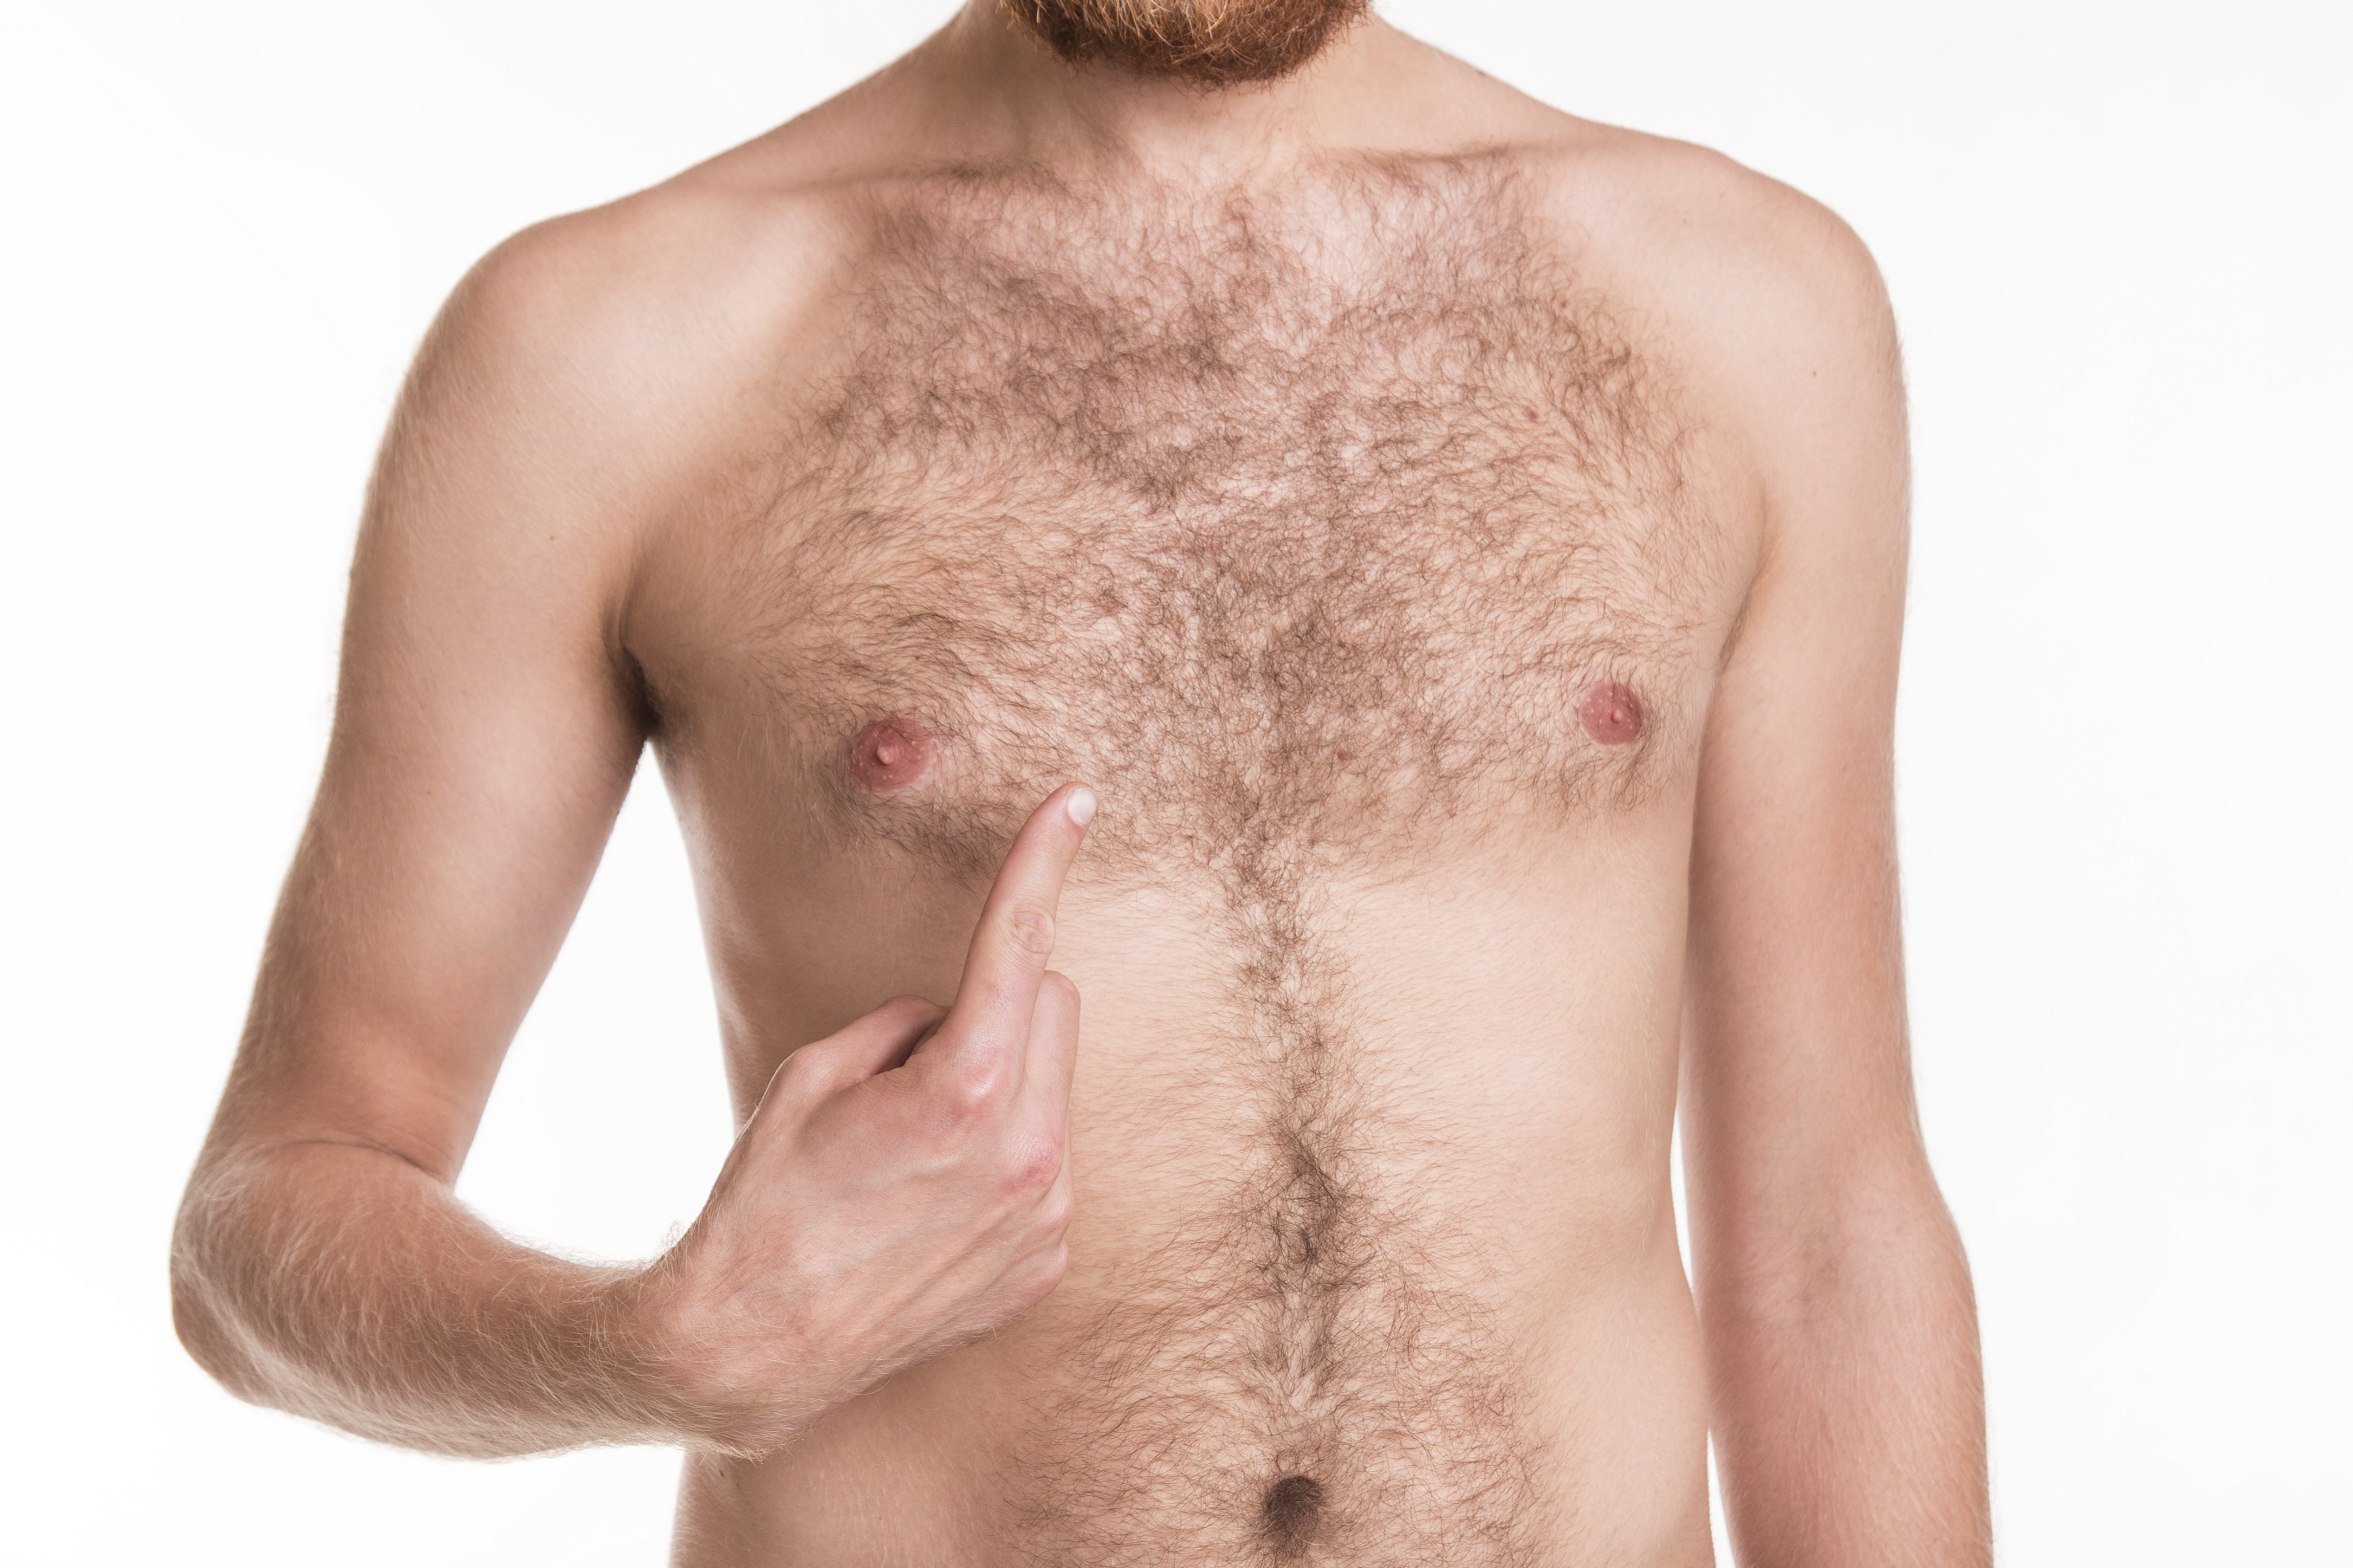 Problem with the hair on your chest - studio shoot